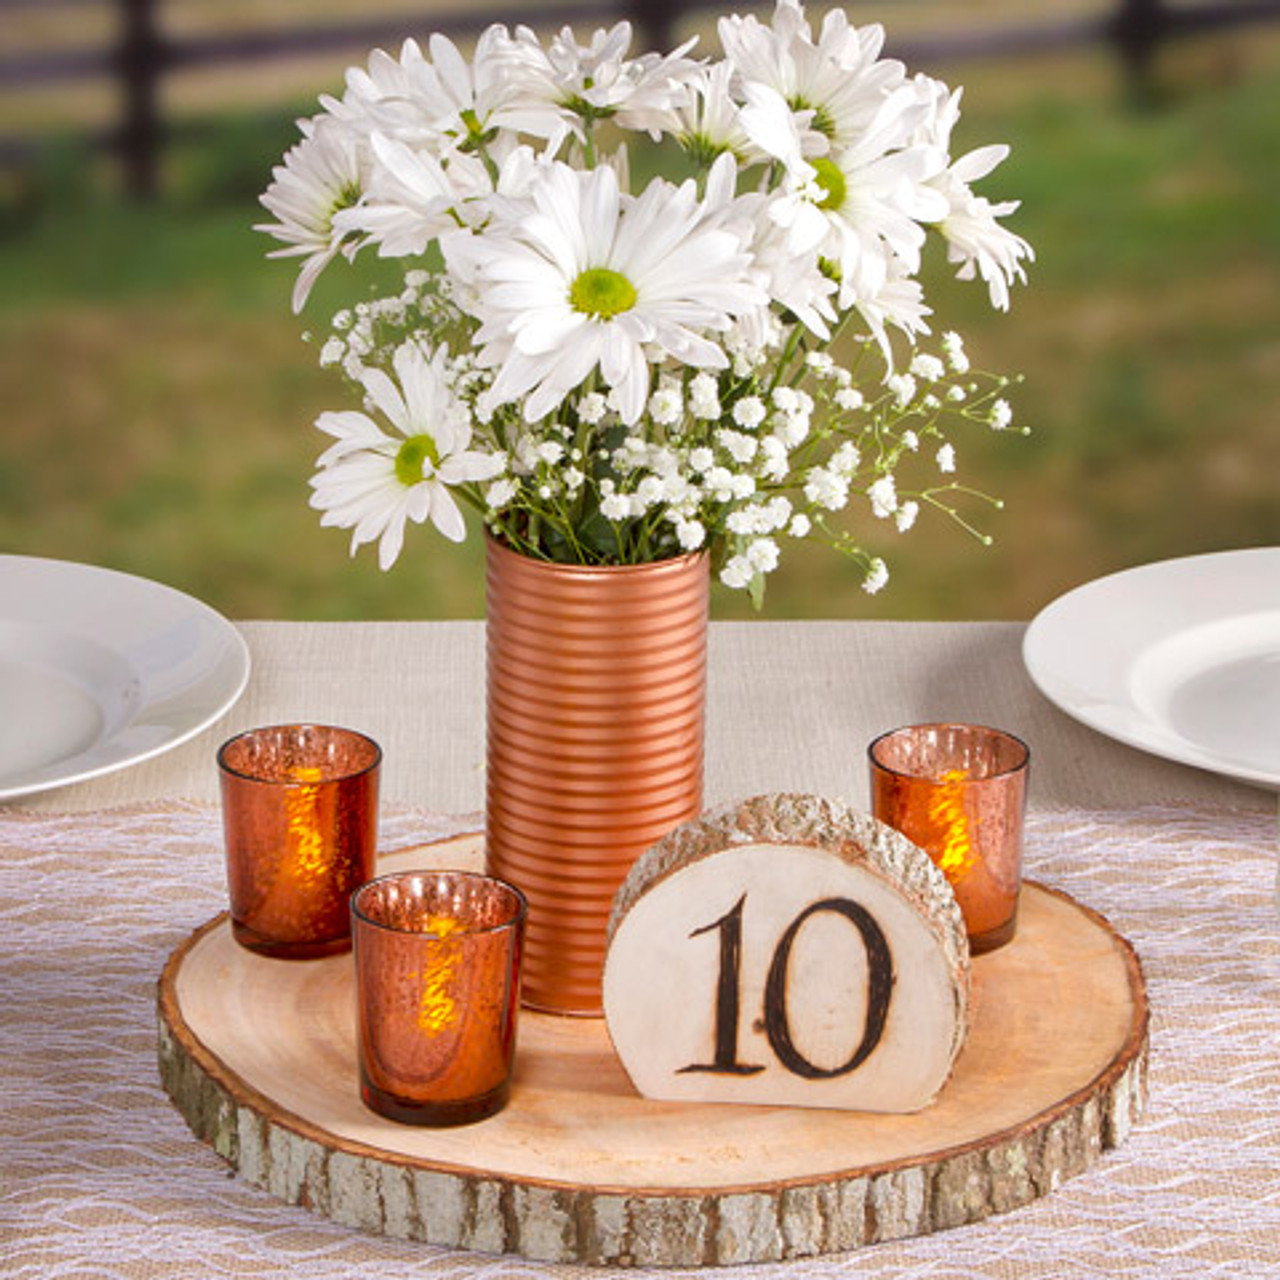 David Tutera™ Rustic Wood Slice Charger for Centerpieces: 12 x 11.25 inches